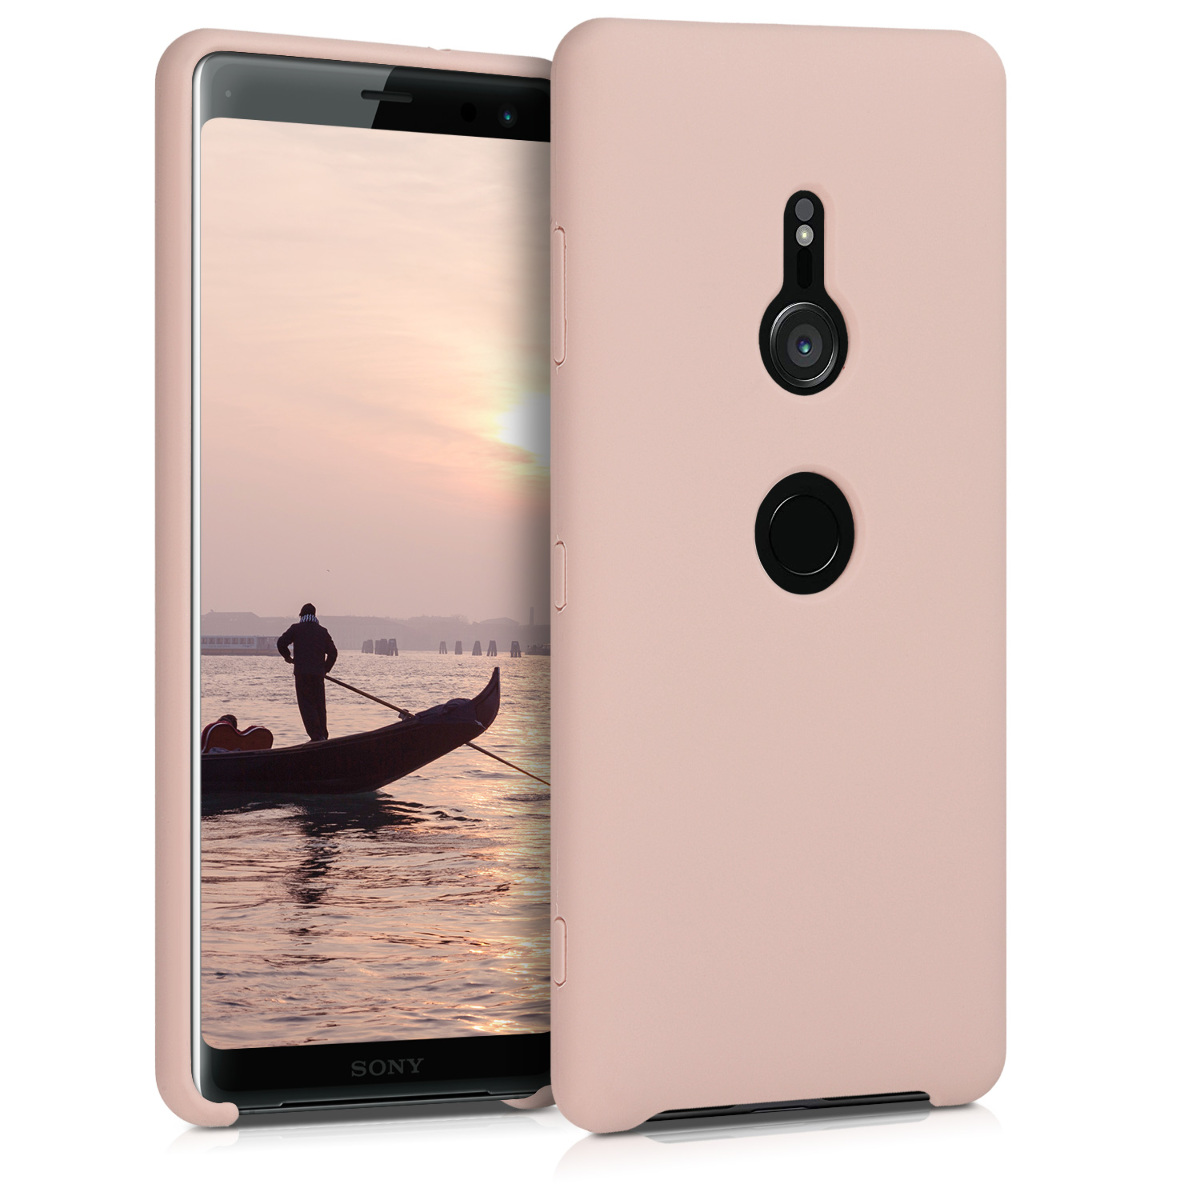 KW TPU Θήκη Σιλικόνης Sony Xperia XZ3 - Soft Flexible Rubber Protective Cover - Antique Pink (46778.10)